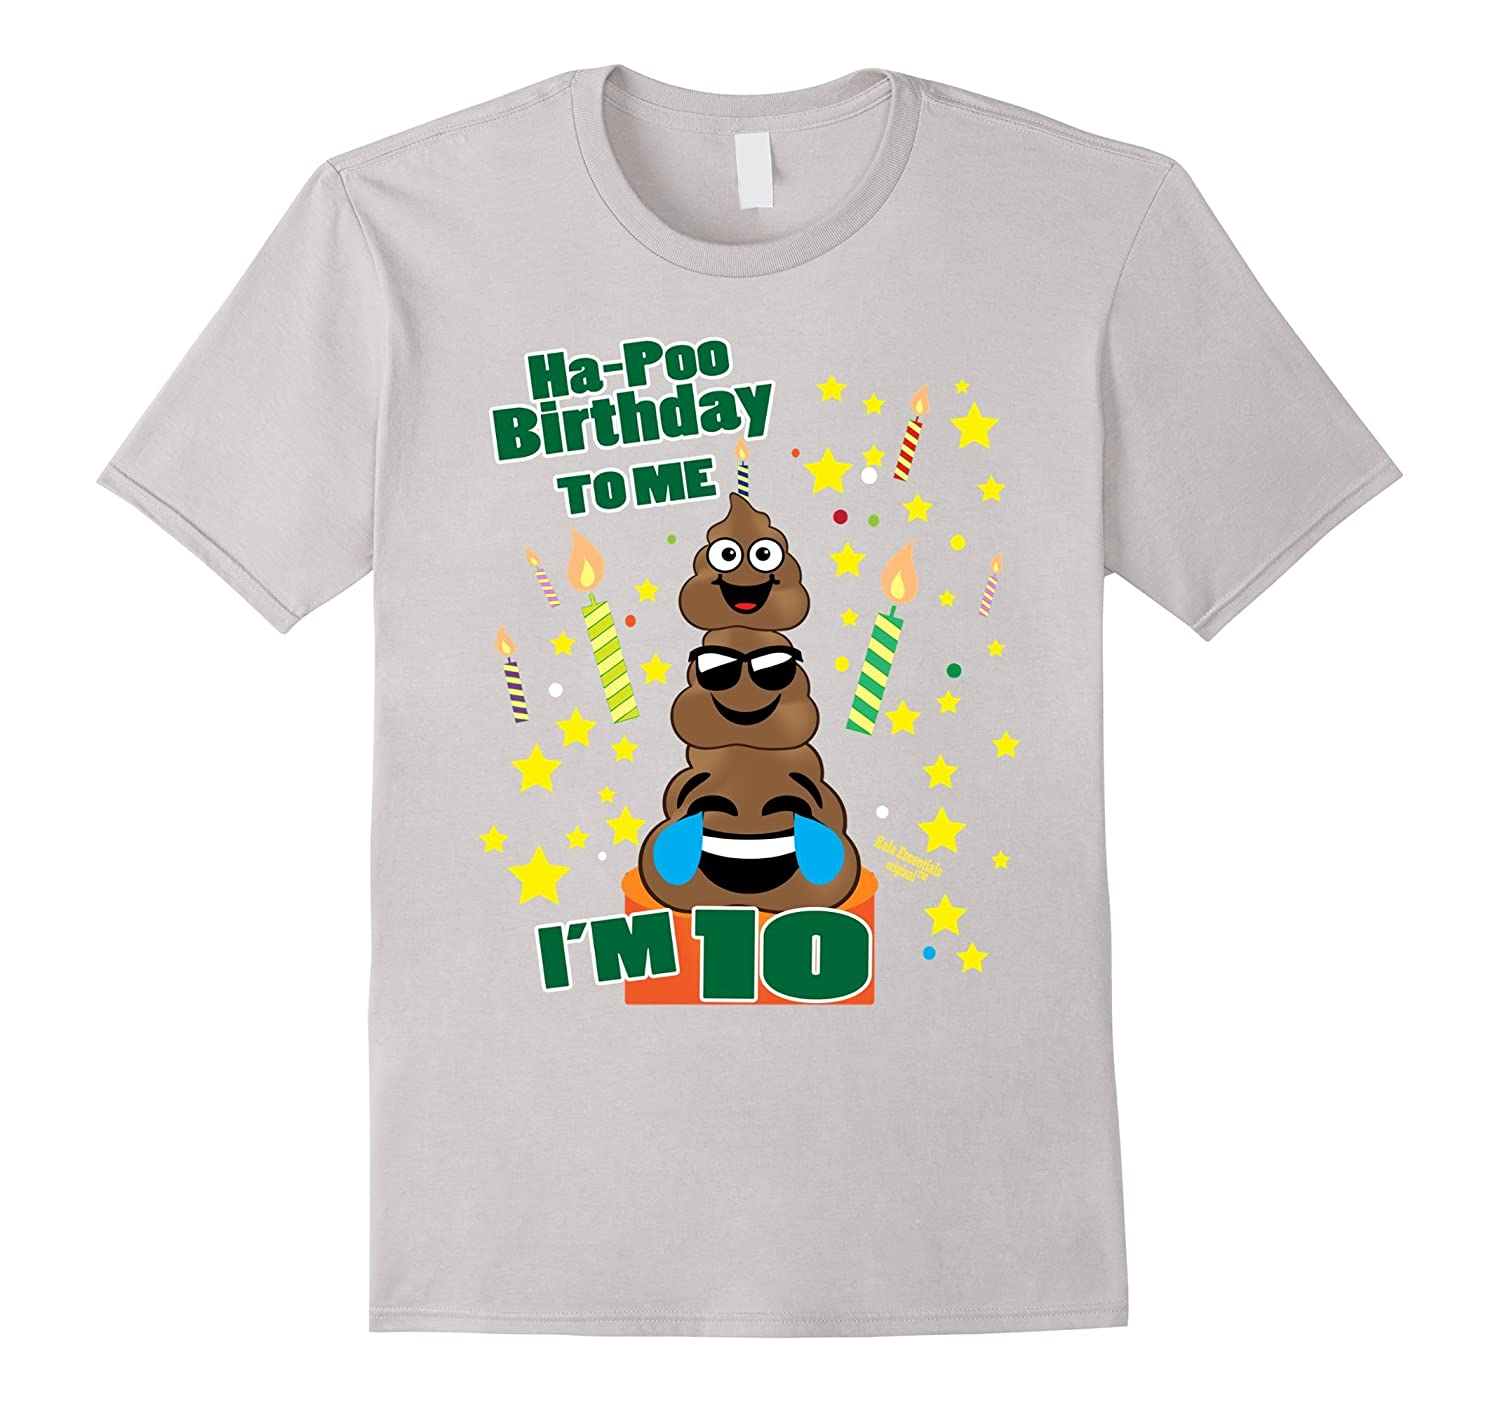 Poop Emoji Birthday Shirts Age 10 Its My Ha Poo Cake TH